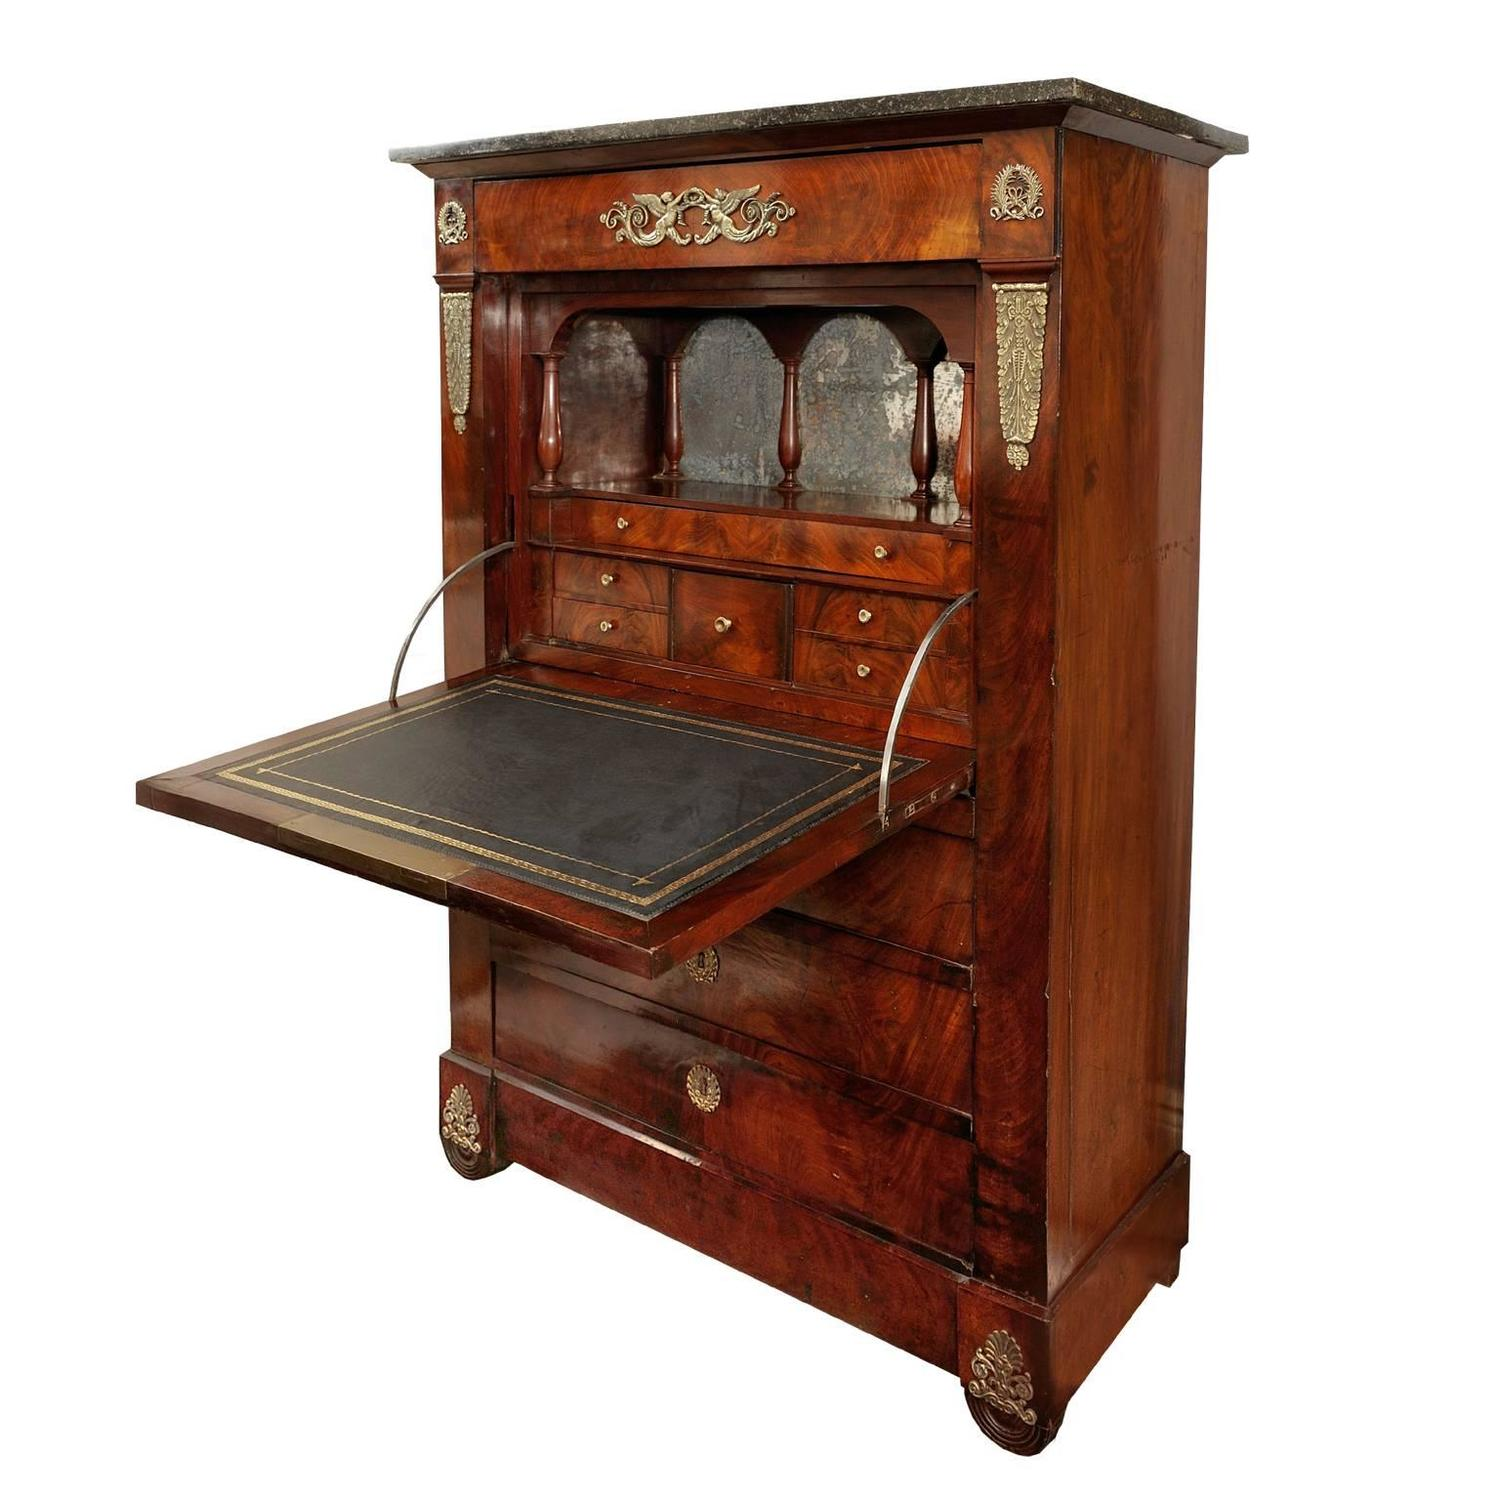 french early 19th century napoleonic secretaire a abattant circa 1820 for sale at 1stdibs. Black Bedroom Furniture Sets. Home Design Ideas